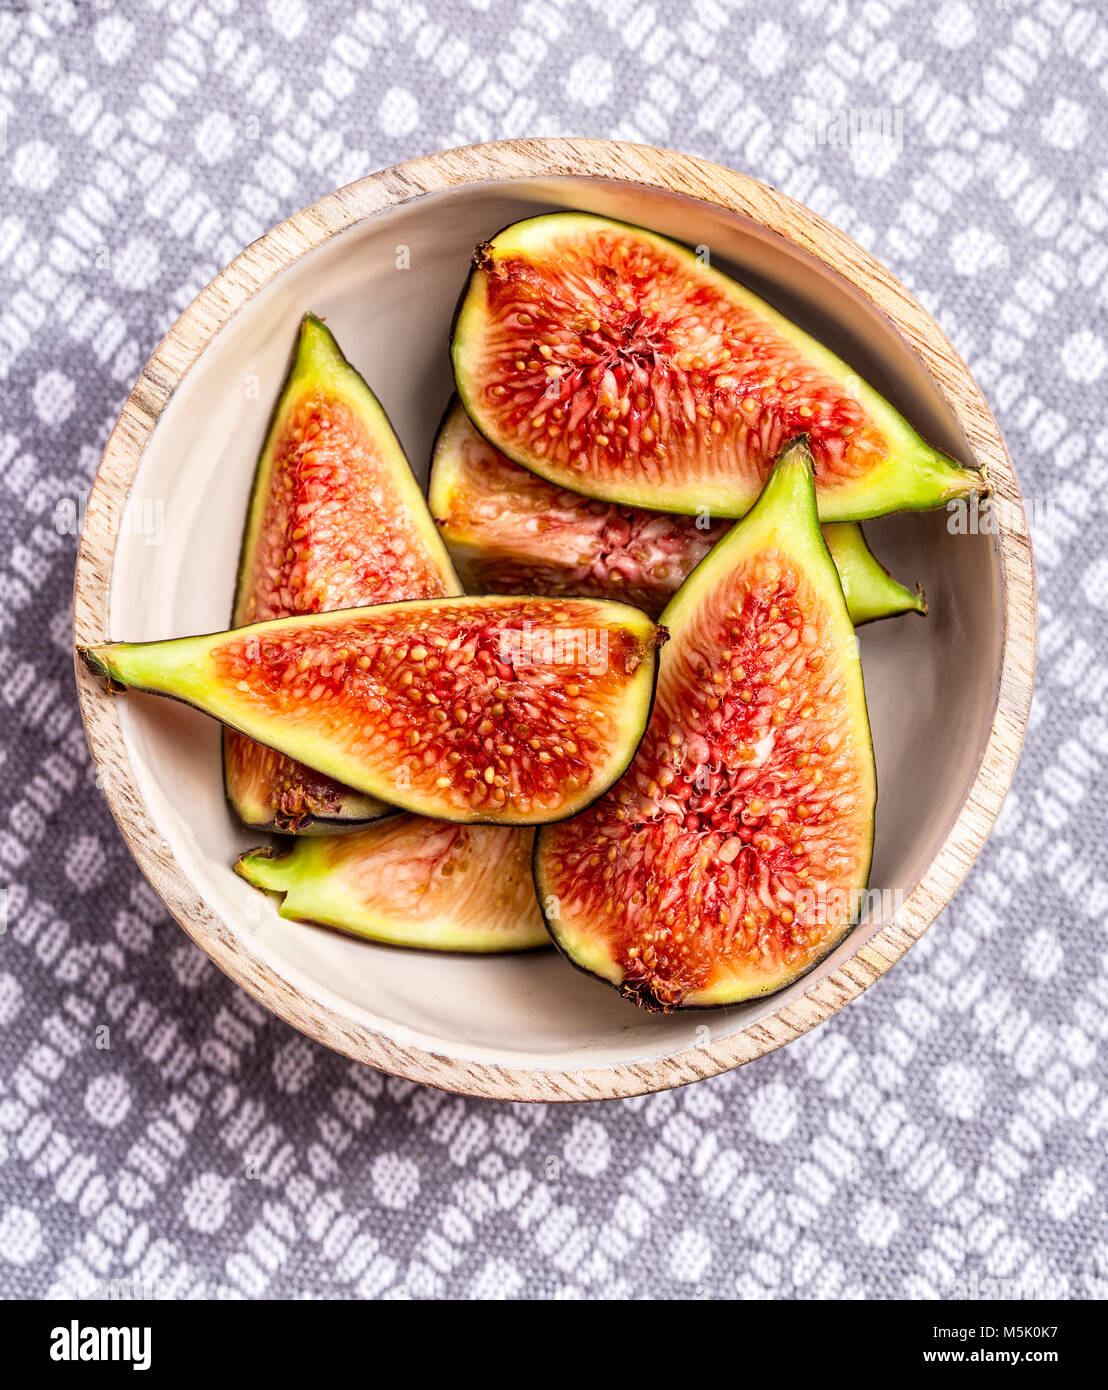 Fresh Figs on a wooden bowl on a light grey textured background Stock Photo